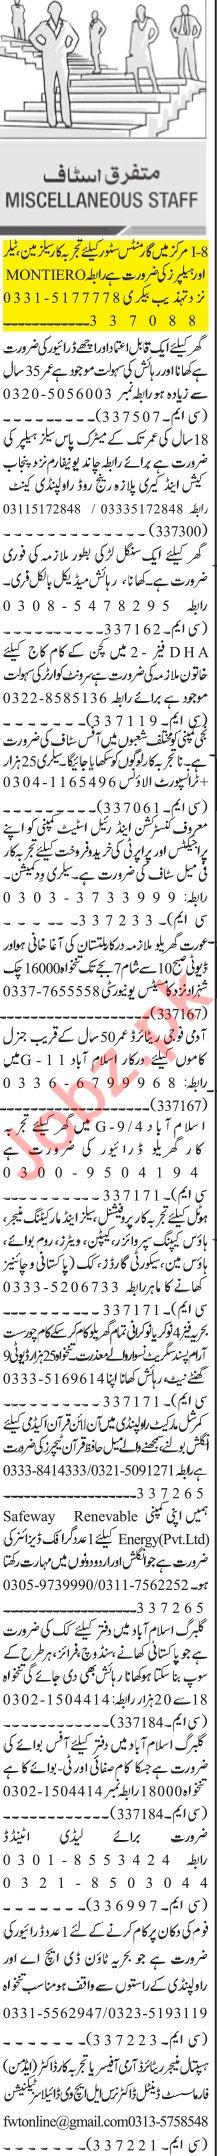 Jang Sunday Classified Ads 1st August 2021 Administration